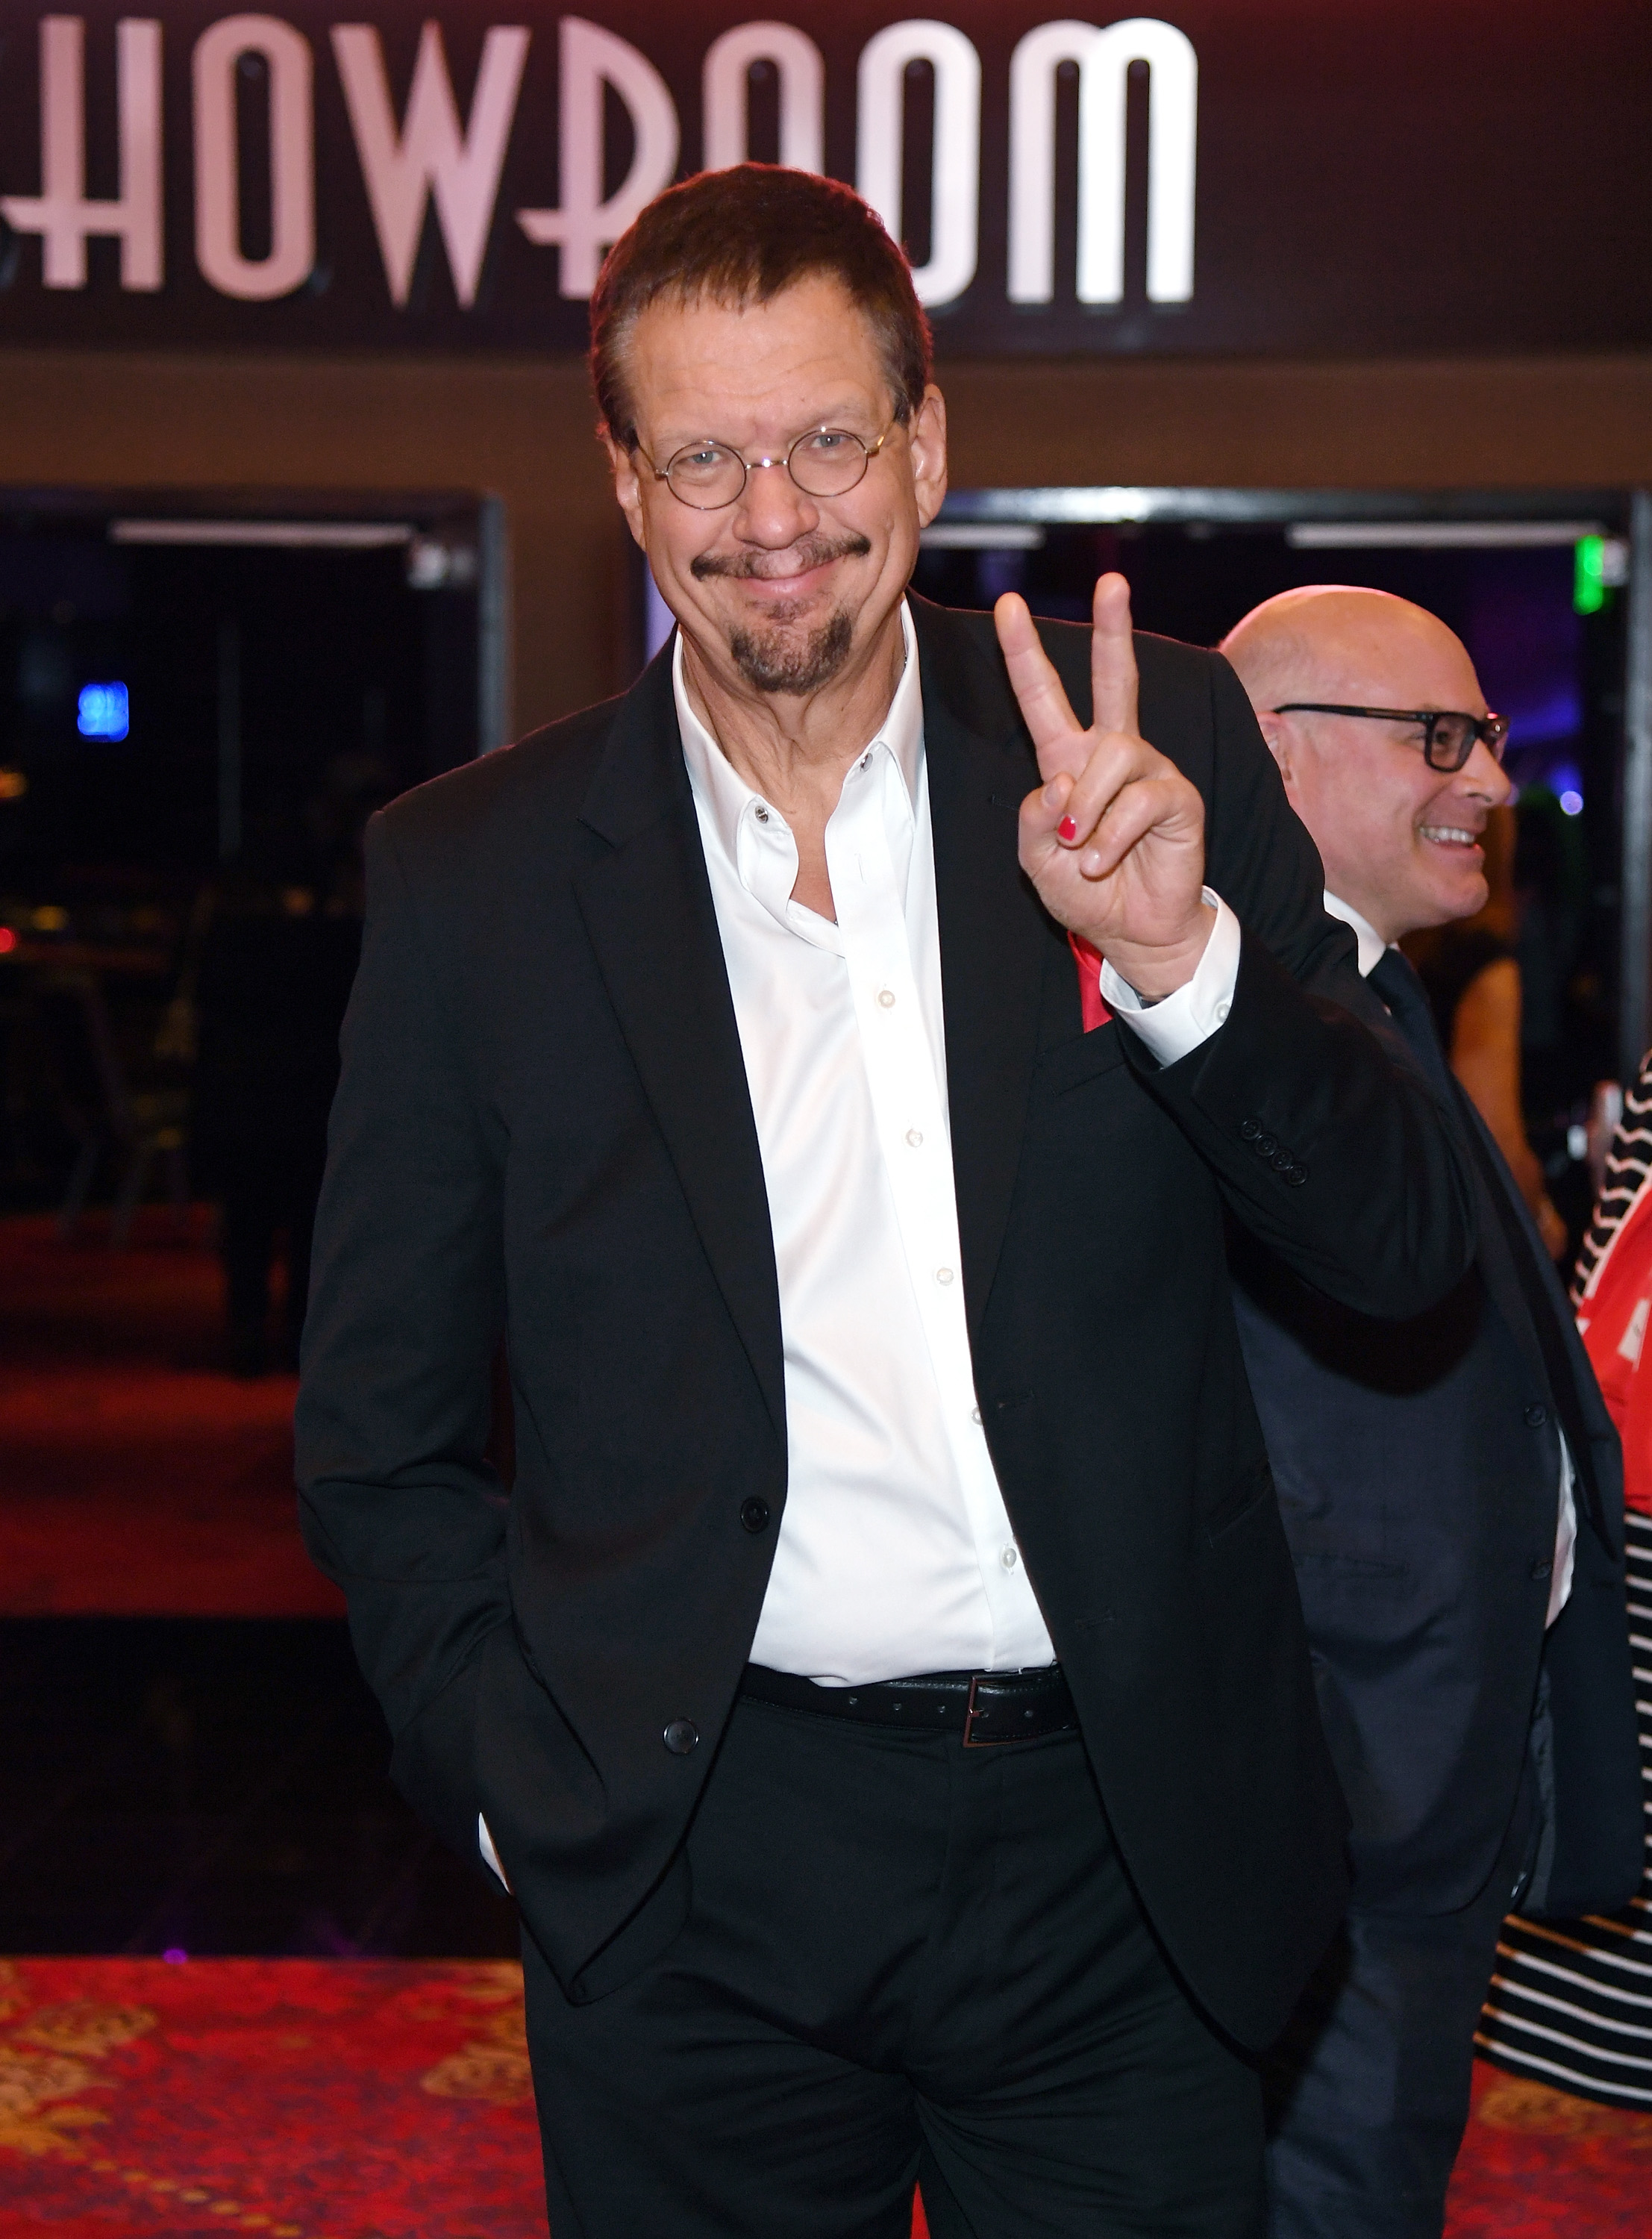 Penn Jillette of the comedy/magic team Penn & Teller arrives at a memorial for Jerry Lewis at the South Point Hotel & Casino on September 4, 2017 in Las Vegas, Nevada. Lewis died on August 20, 2017, at his home in Las Vegas at age 91.